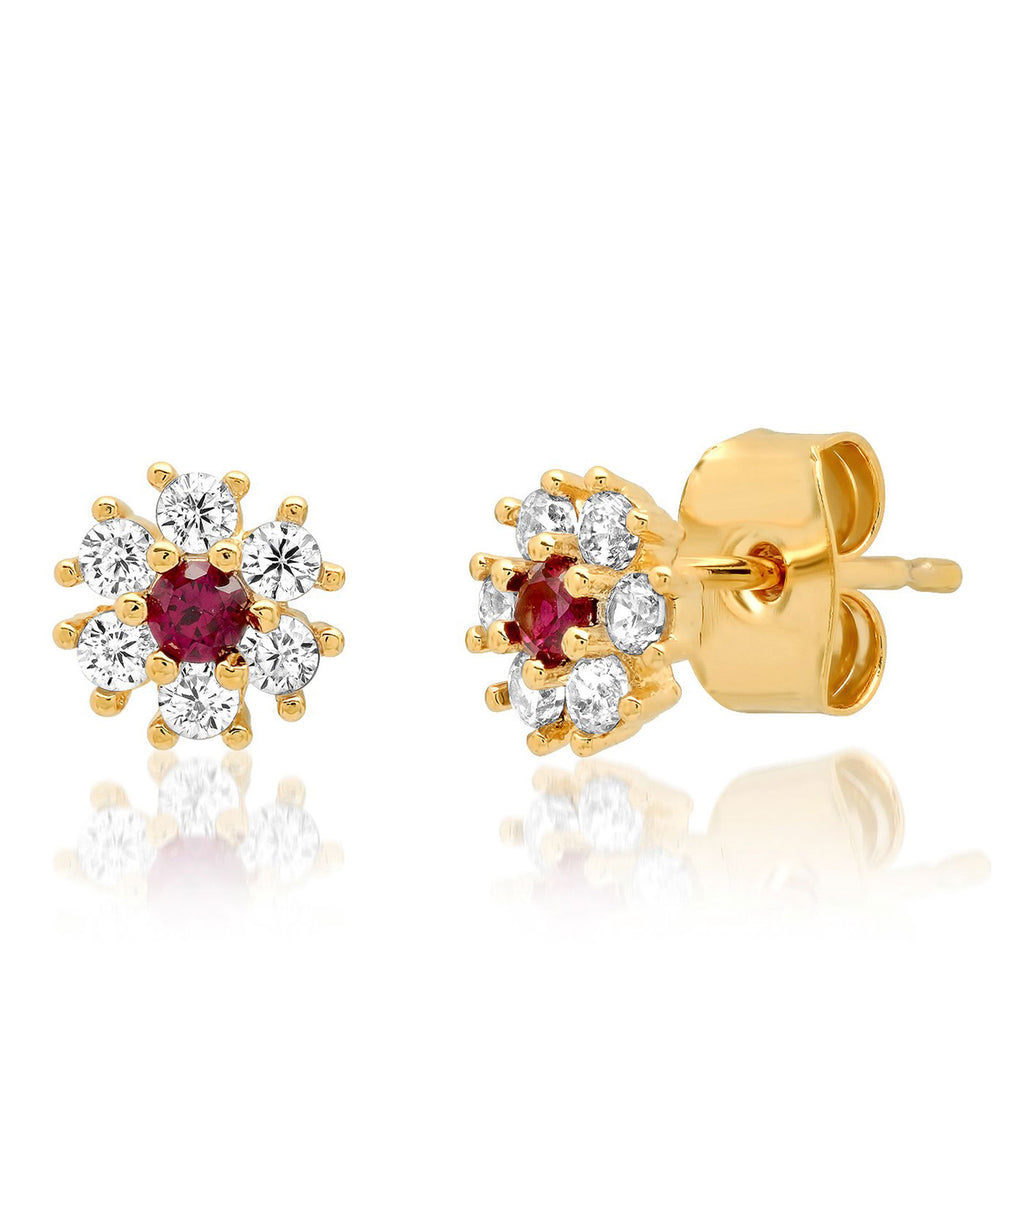 TAI Mini Flower Ruby Stud